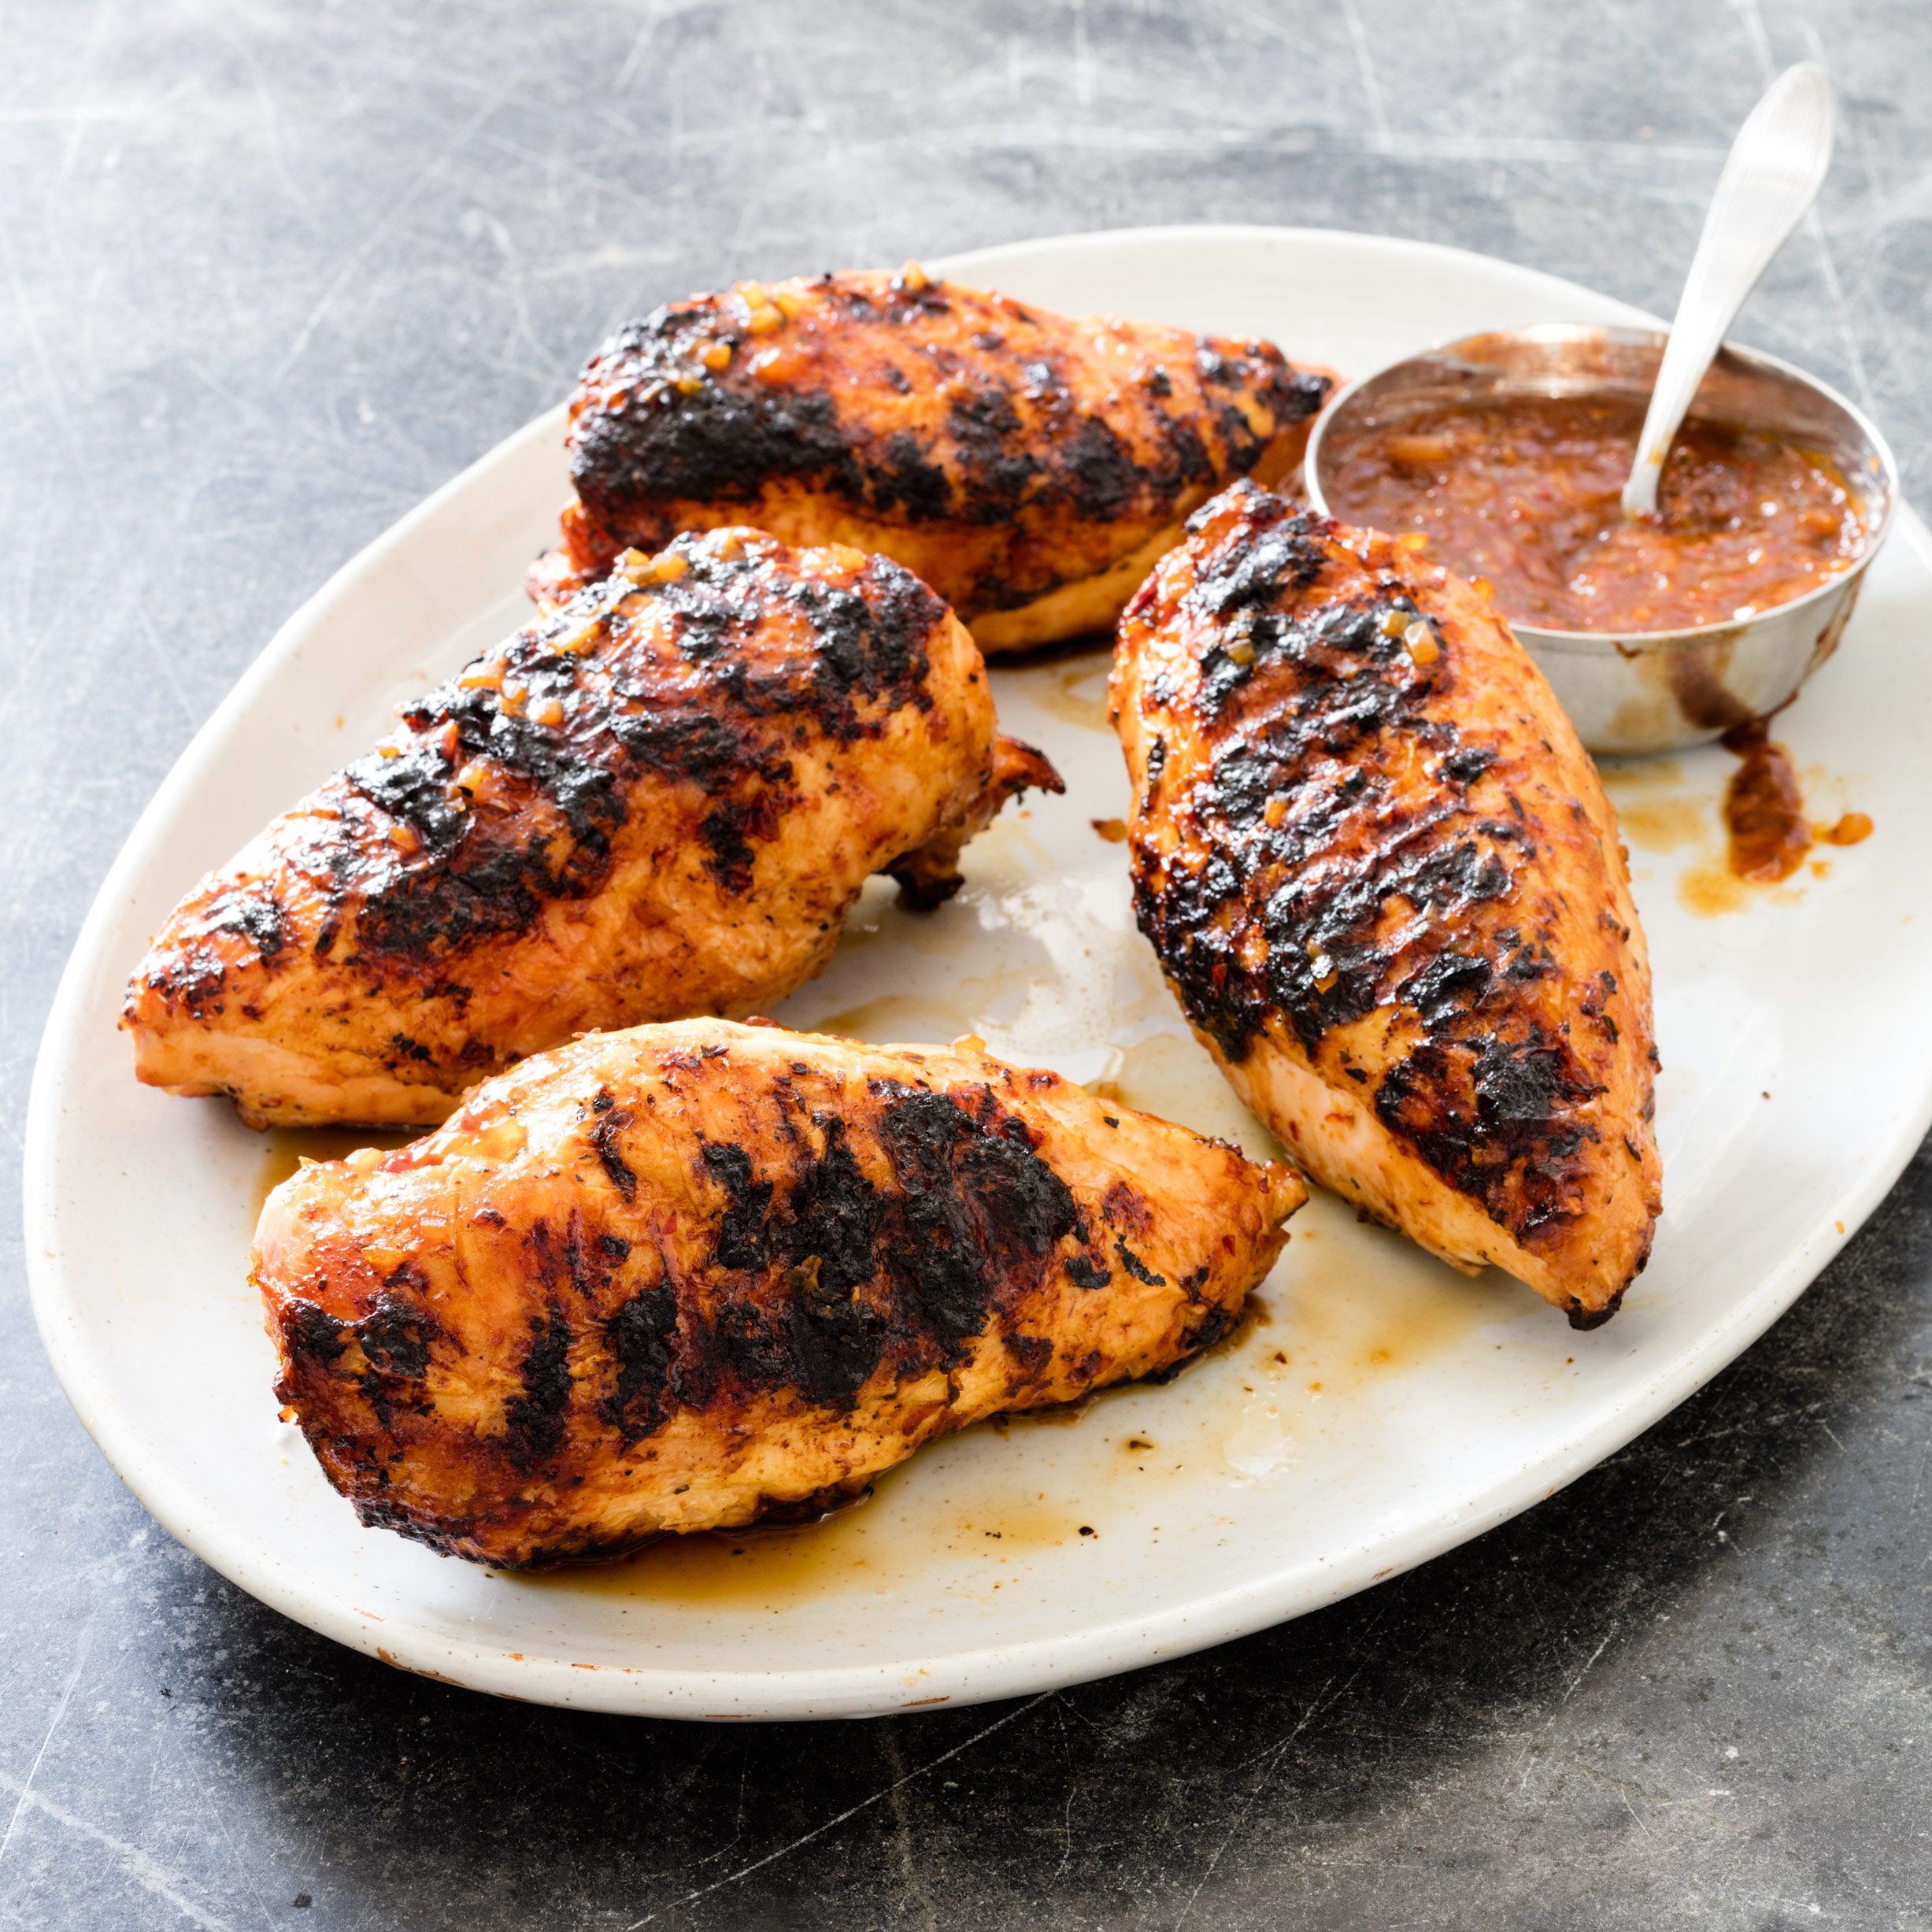 5 Simple Spring Meals On The Grill: The Key To Avoiding The Charred Skin And Dried-out Meat